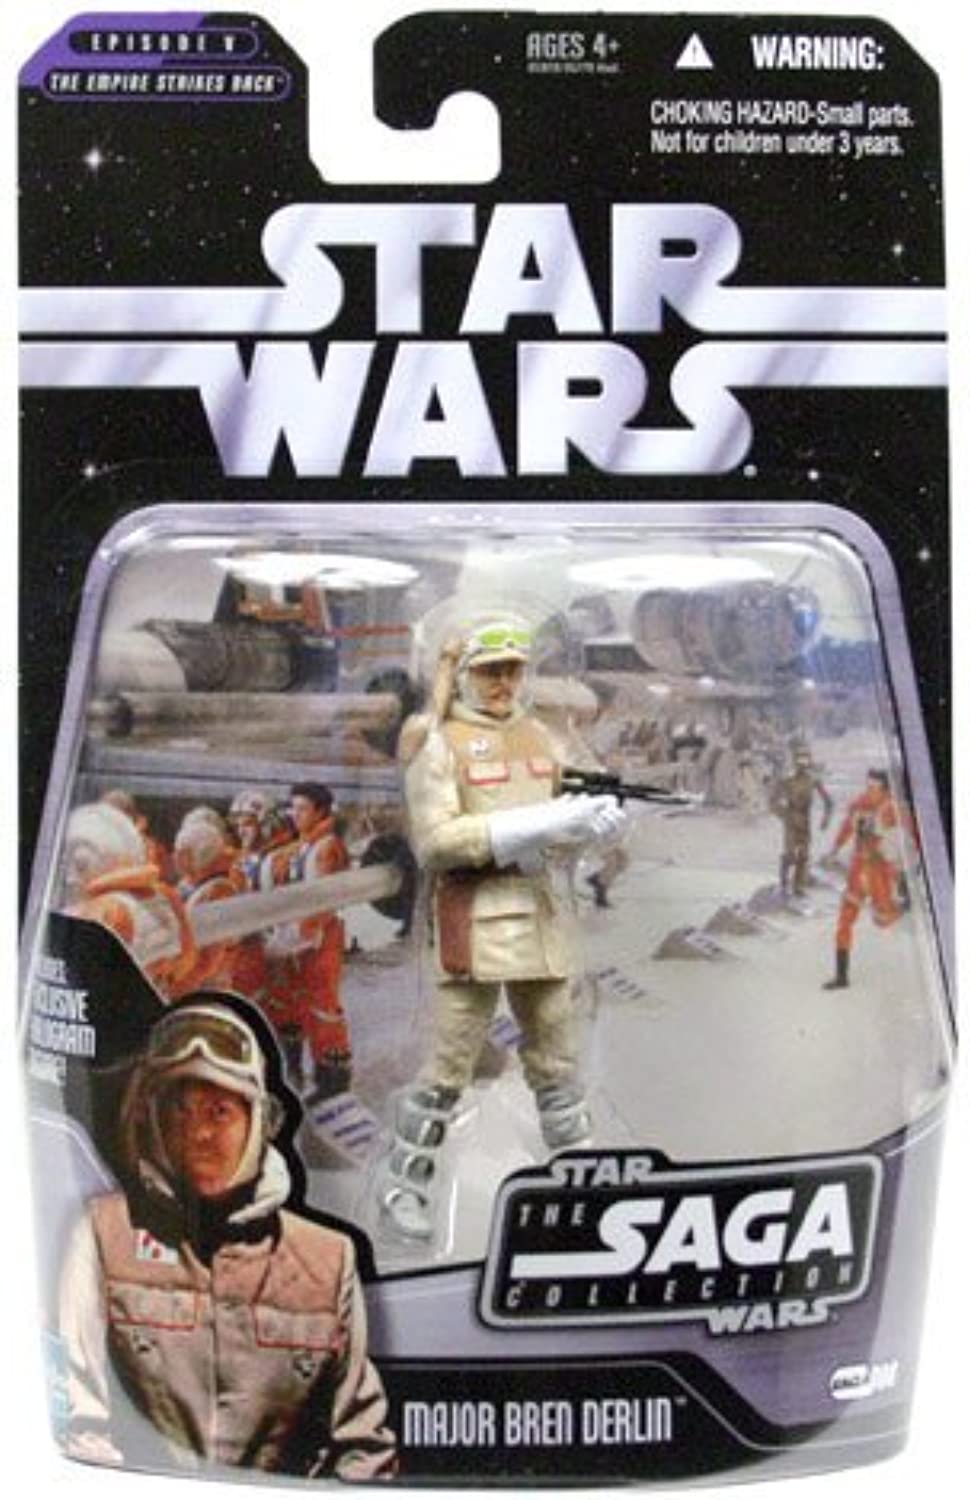 Star Wars - Assault on Hoth Echo Base - Basic Figure - Major Bren Derlin by Hasbro (English Manual) B00NZGJUFW Vollständige Spezifikation   | Moderne Muster